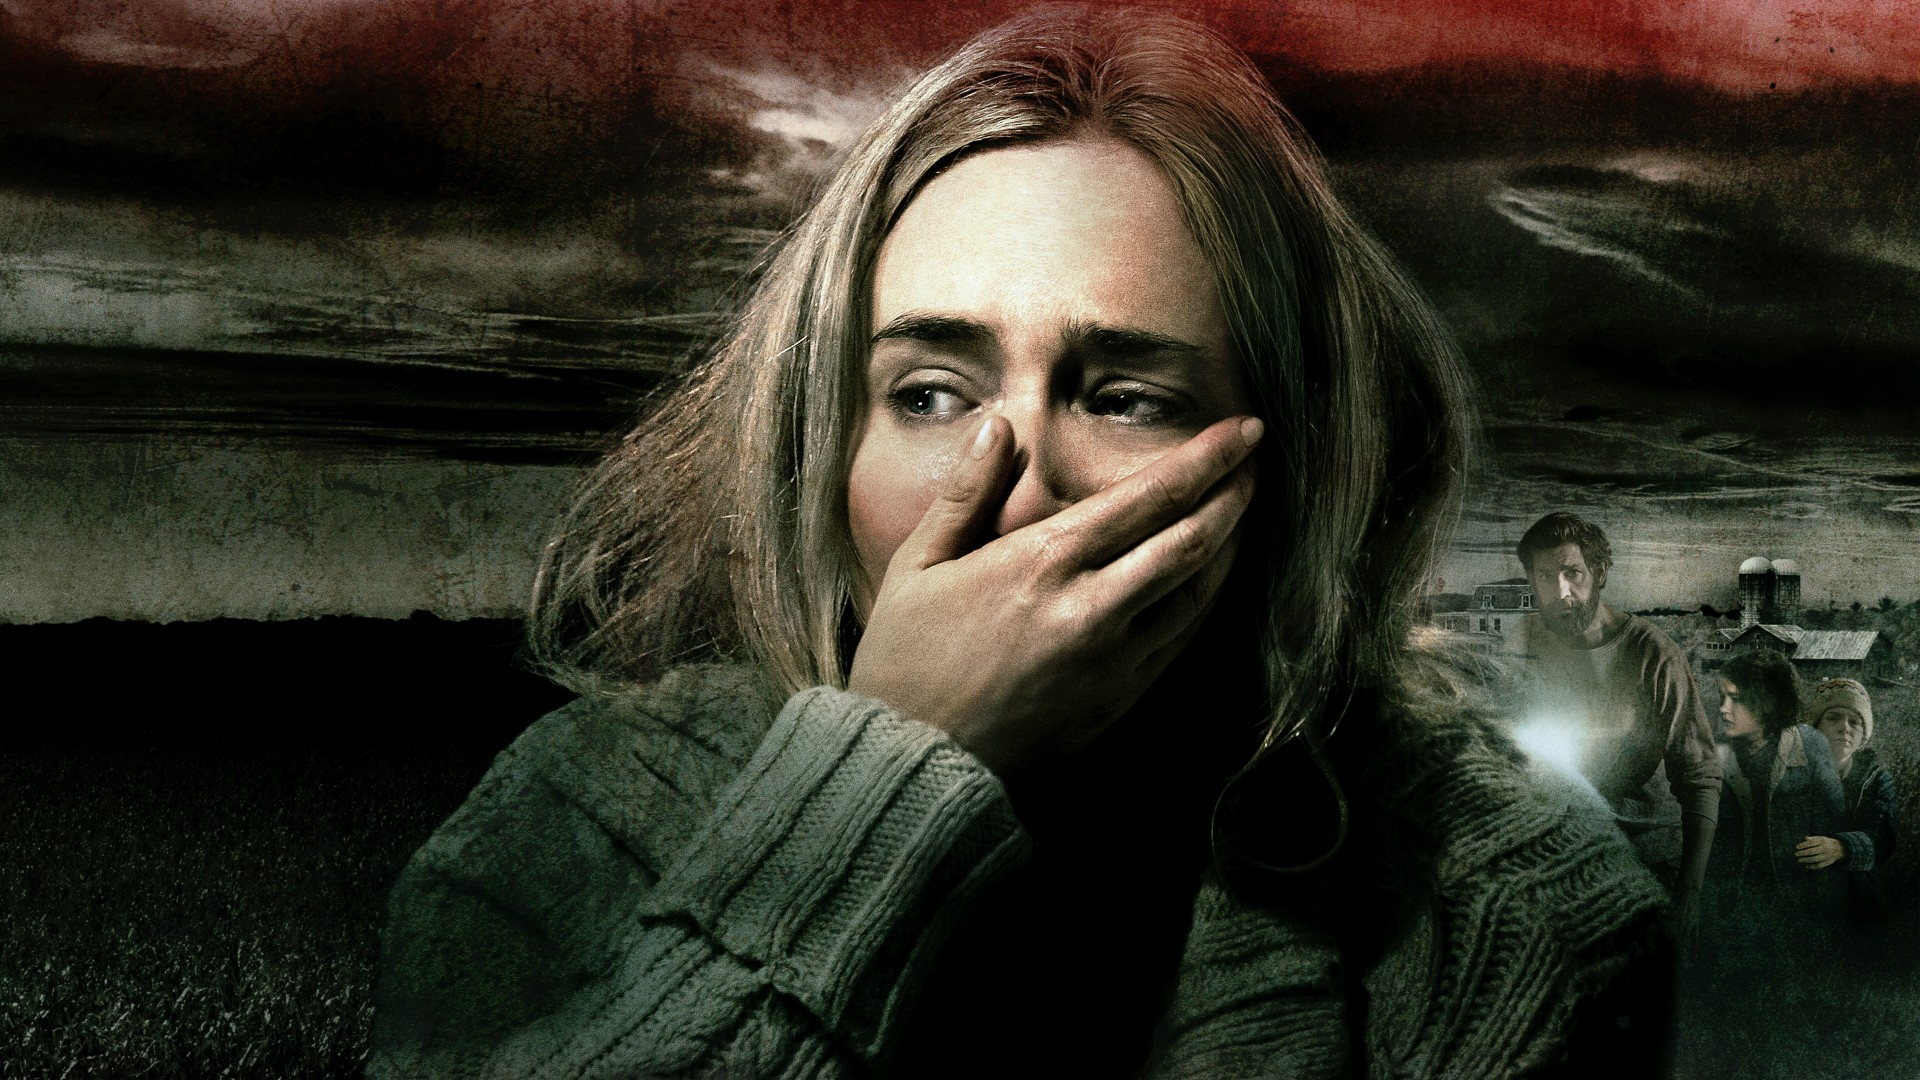 Girl Wallpaper For Iphone 5 A Quiet Place Emily Blunt 4k 8k Wallpapers Hd Wallpapers